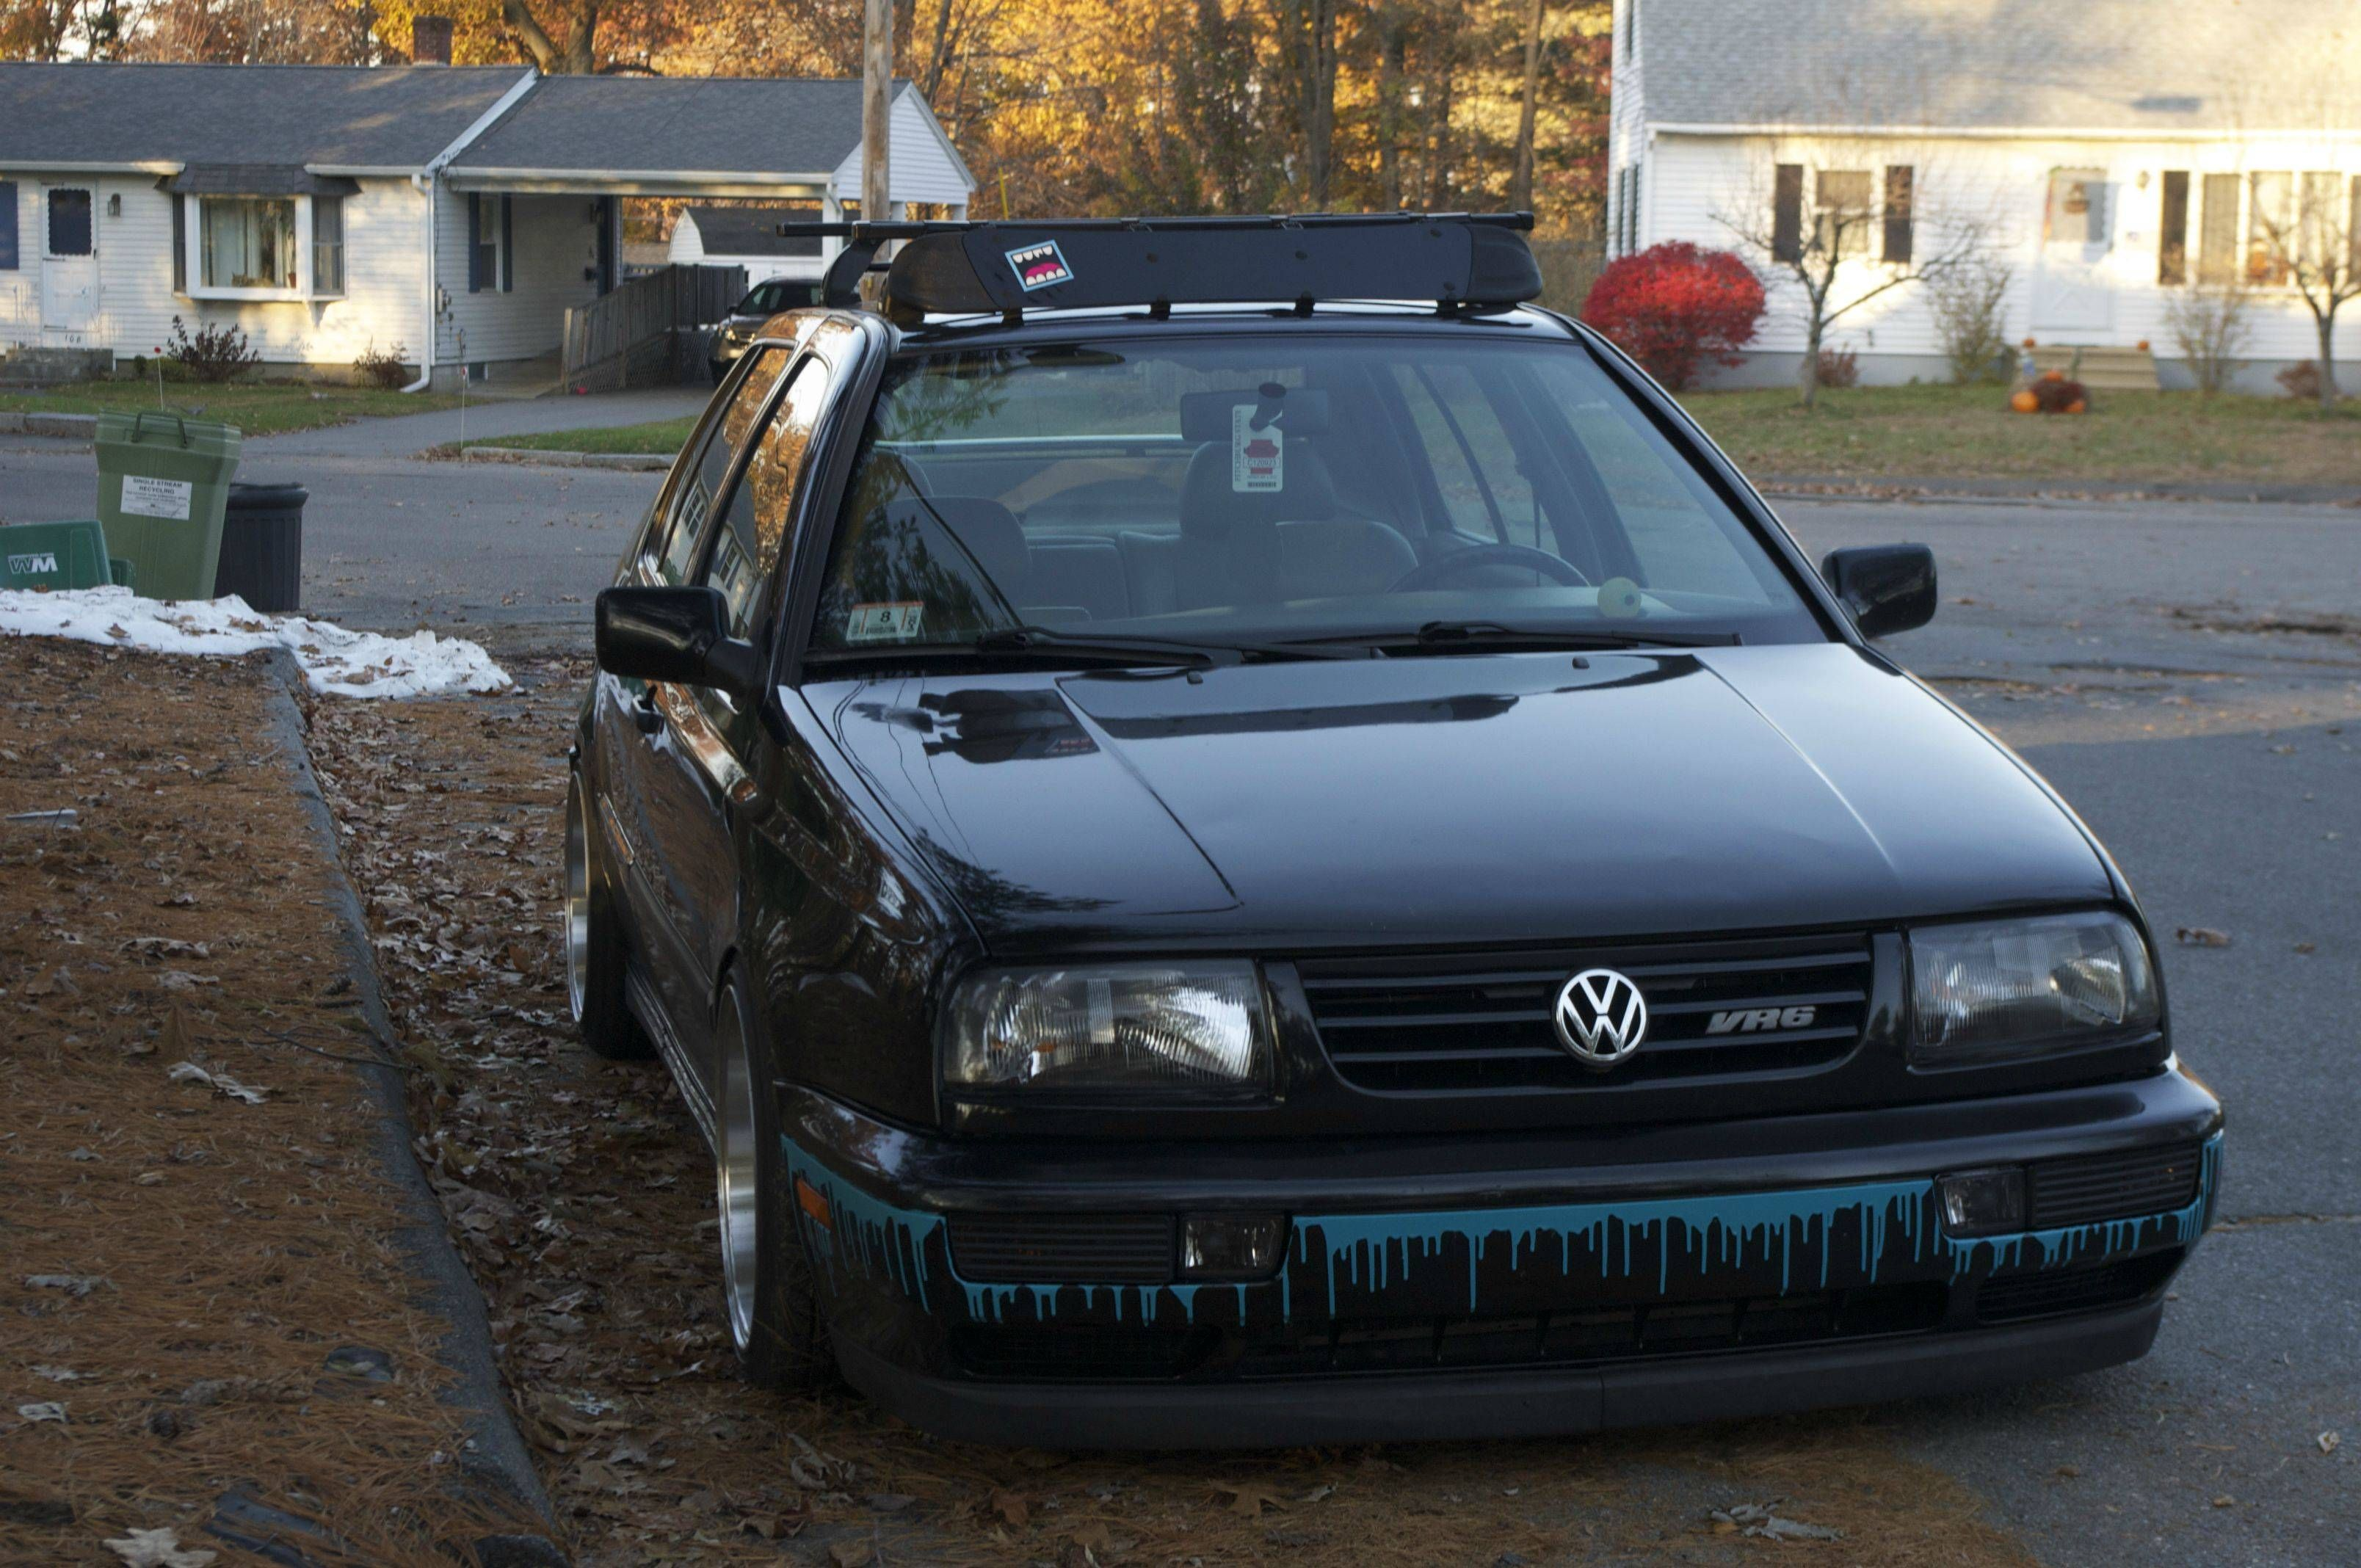 FS: Thule Roof Rack, Snowboard Rack, & Fairing | vw golf ...